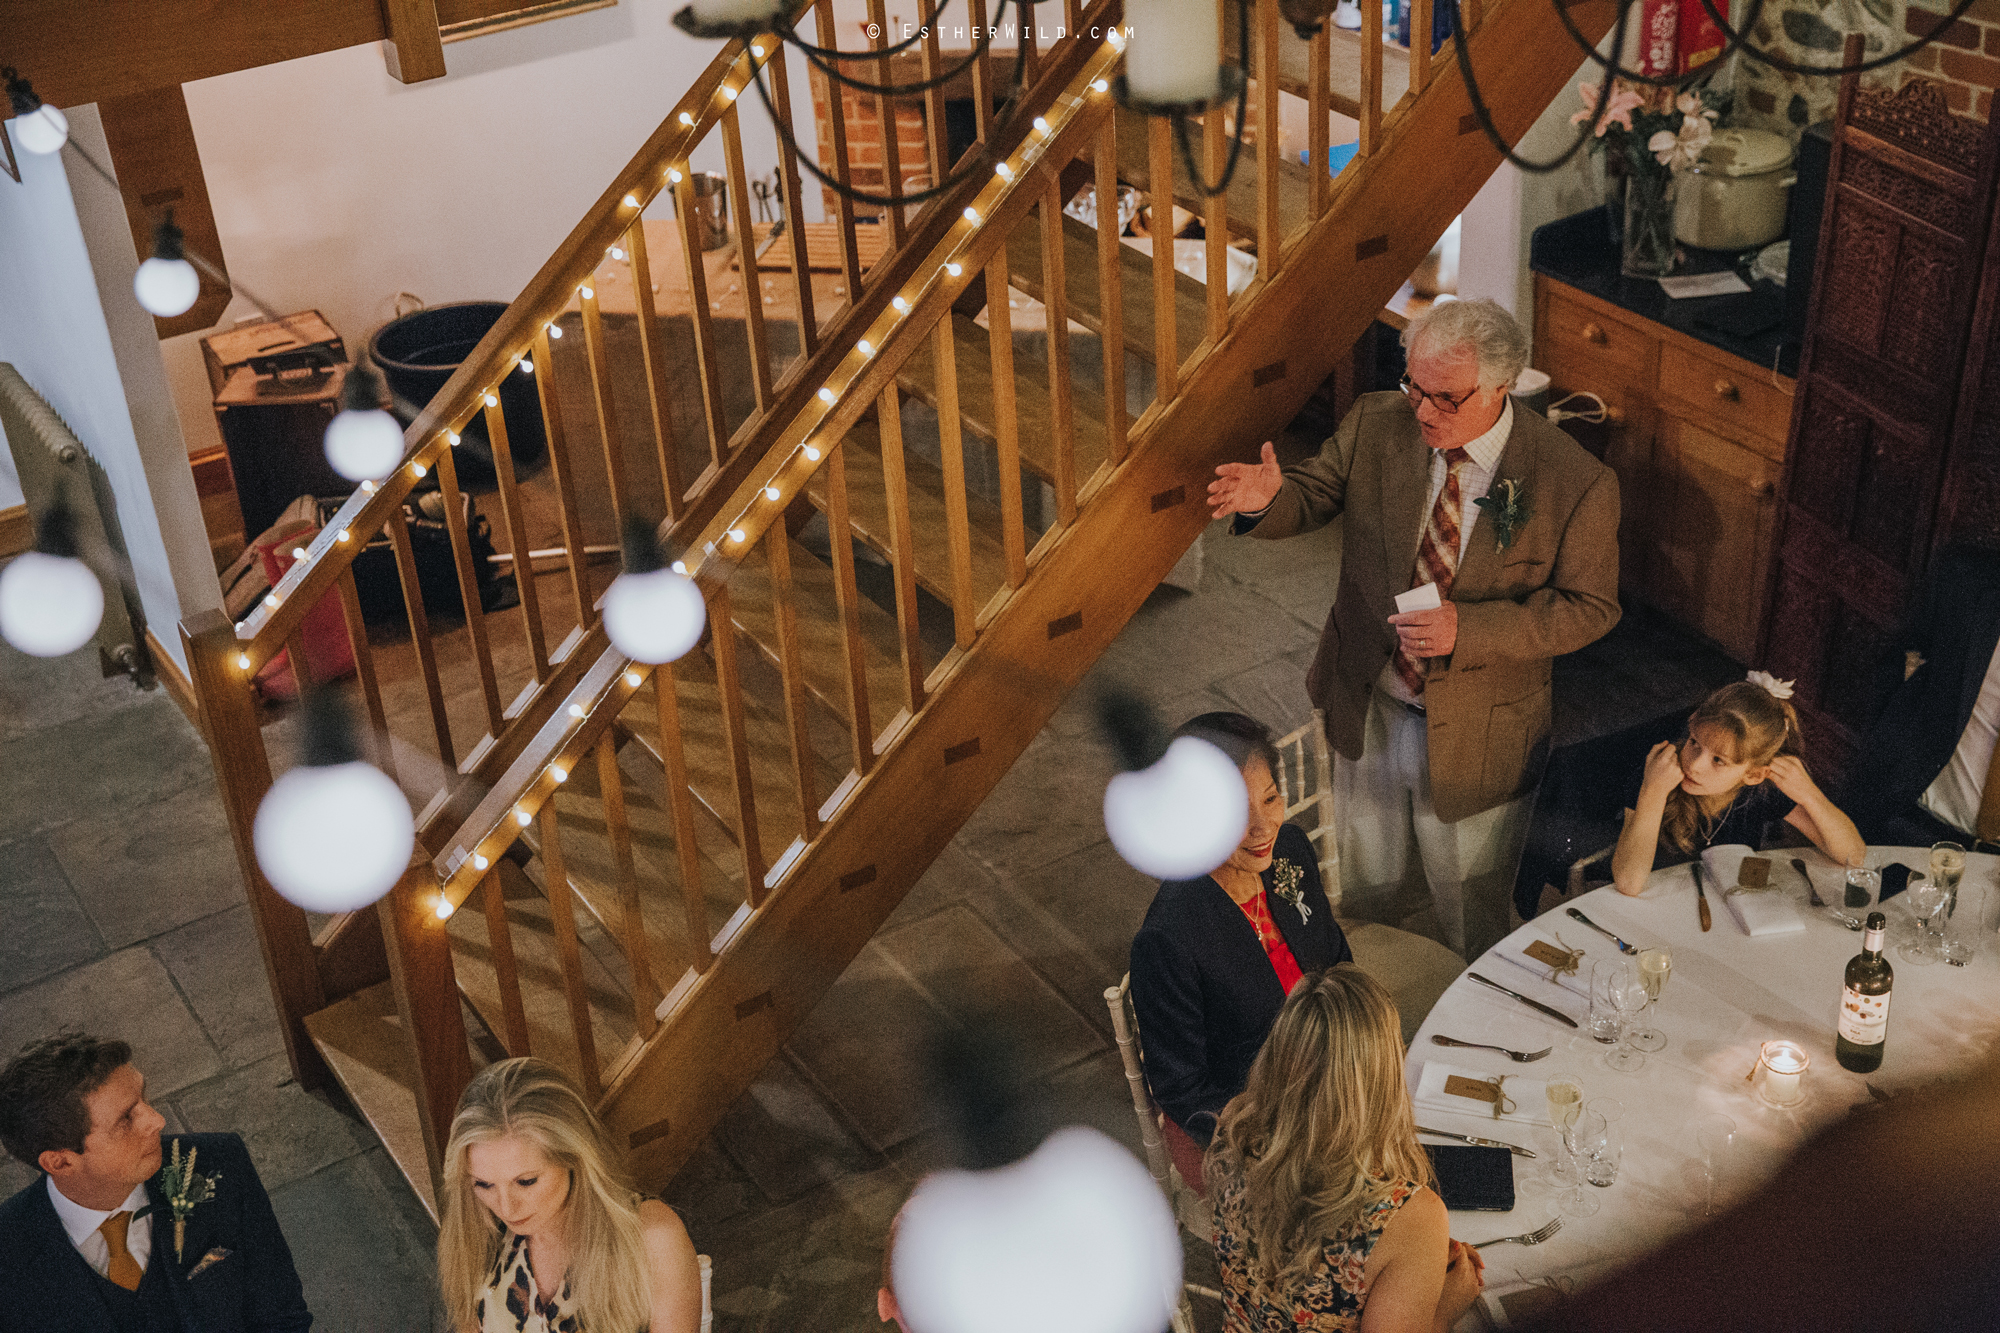 Wedding_Photographer_Chaucer_Barn_Holt_Norfolk_Country_Rustic_Venue_Copyright_Esther_Wild_IMG_1566.jpg